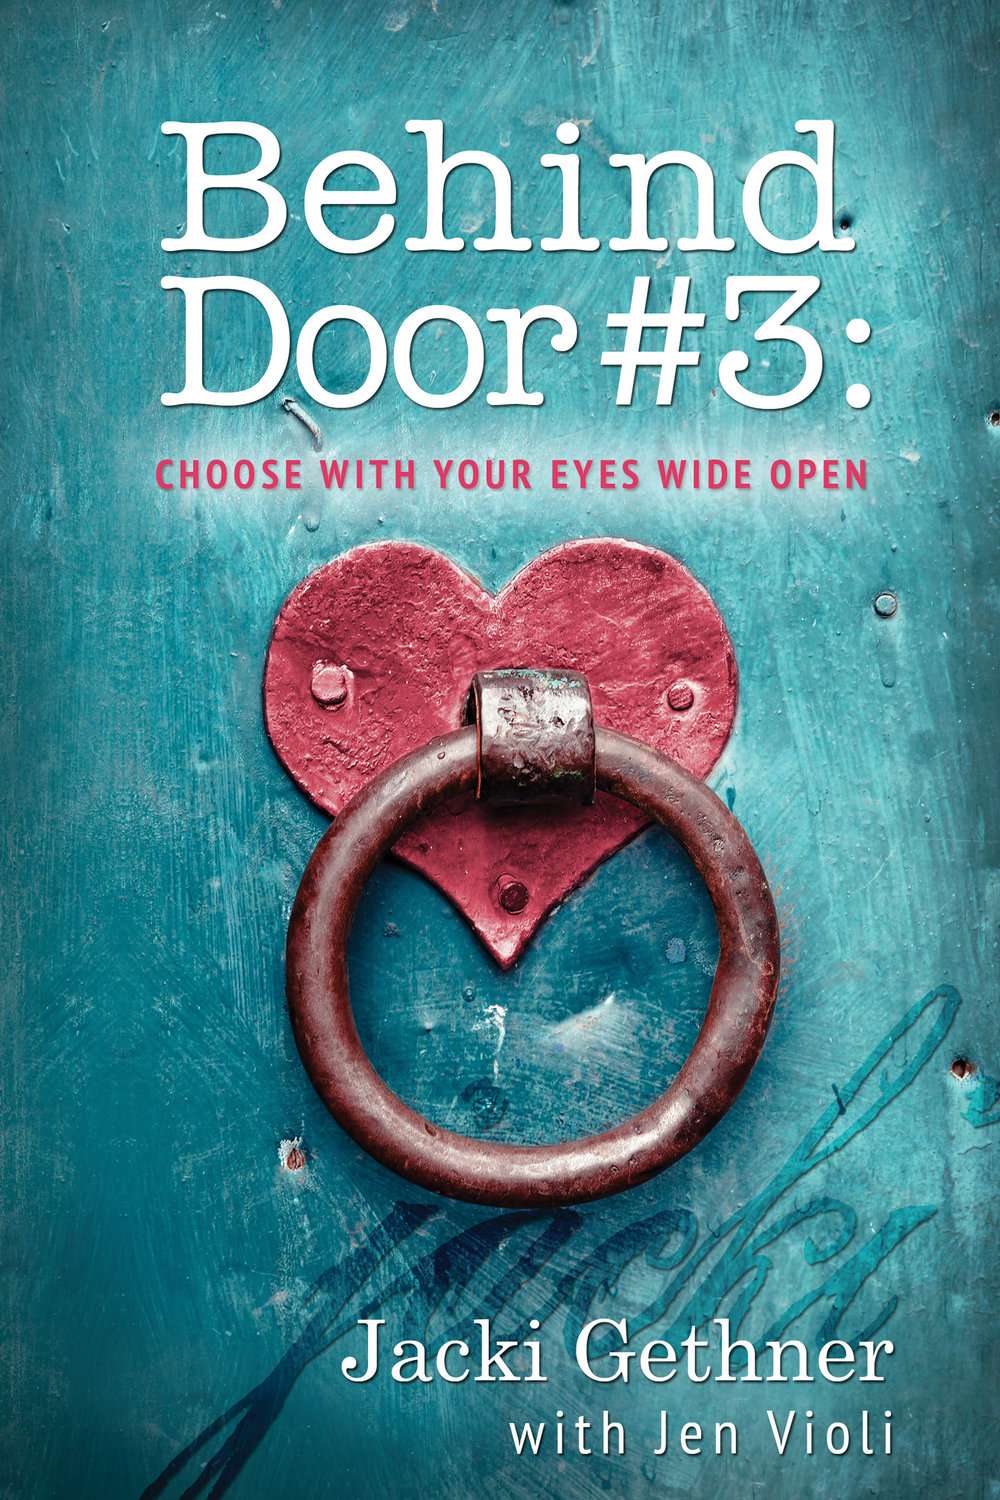 behind-door-3-book-jacki-gethner.jpg